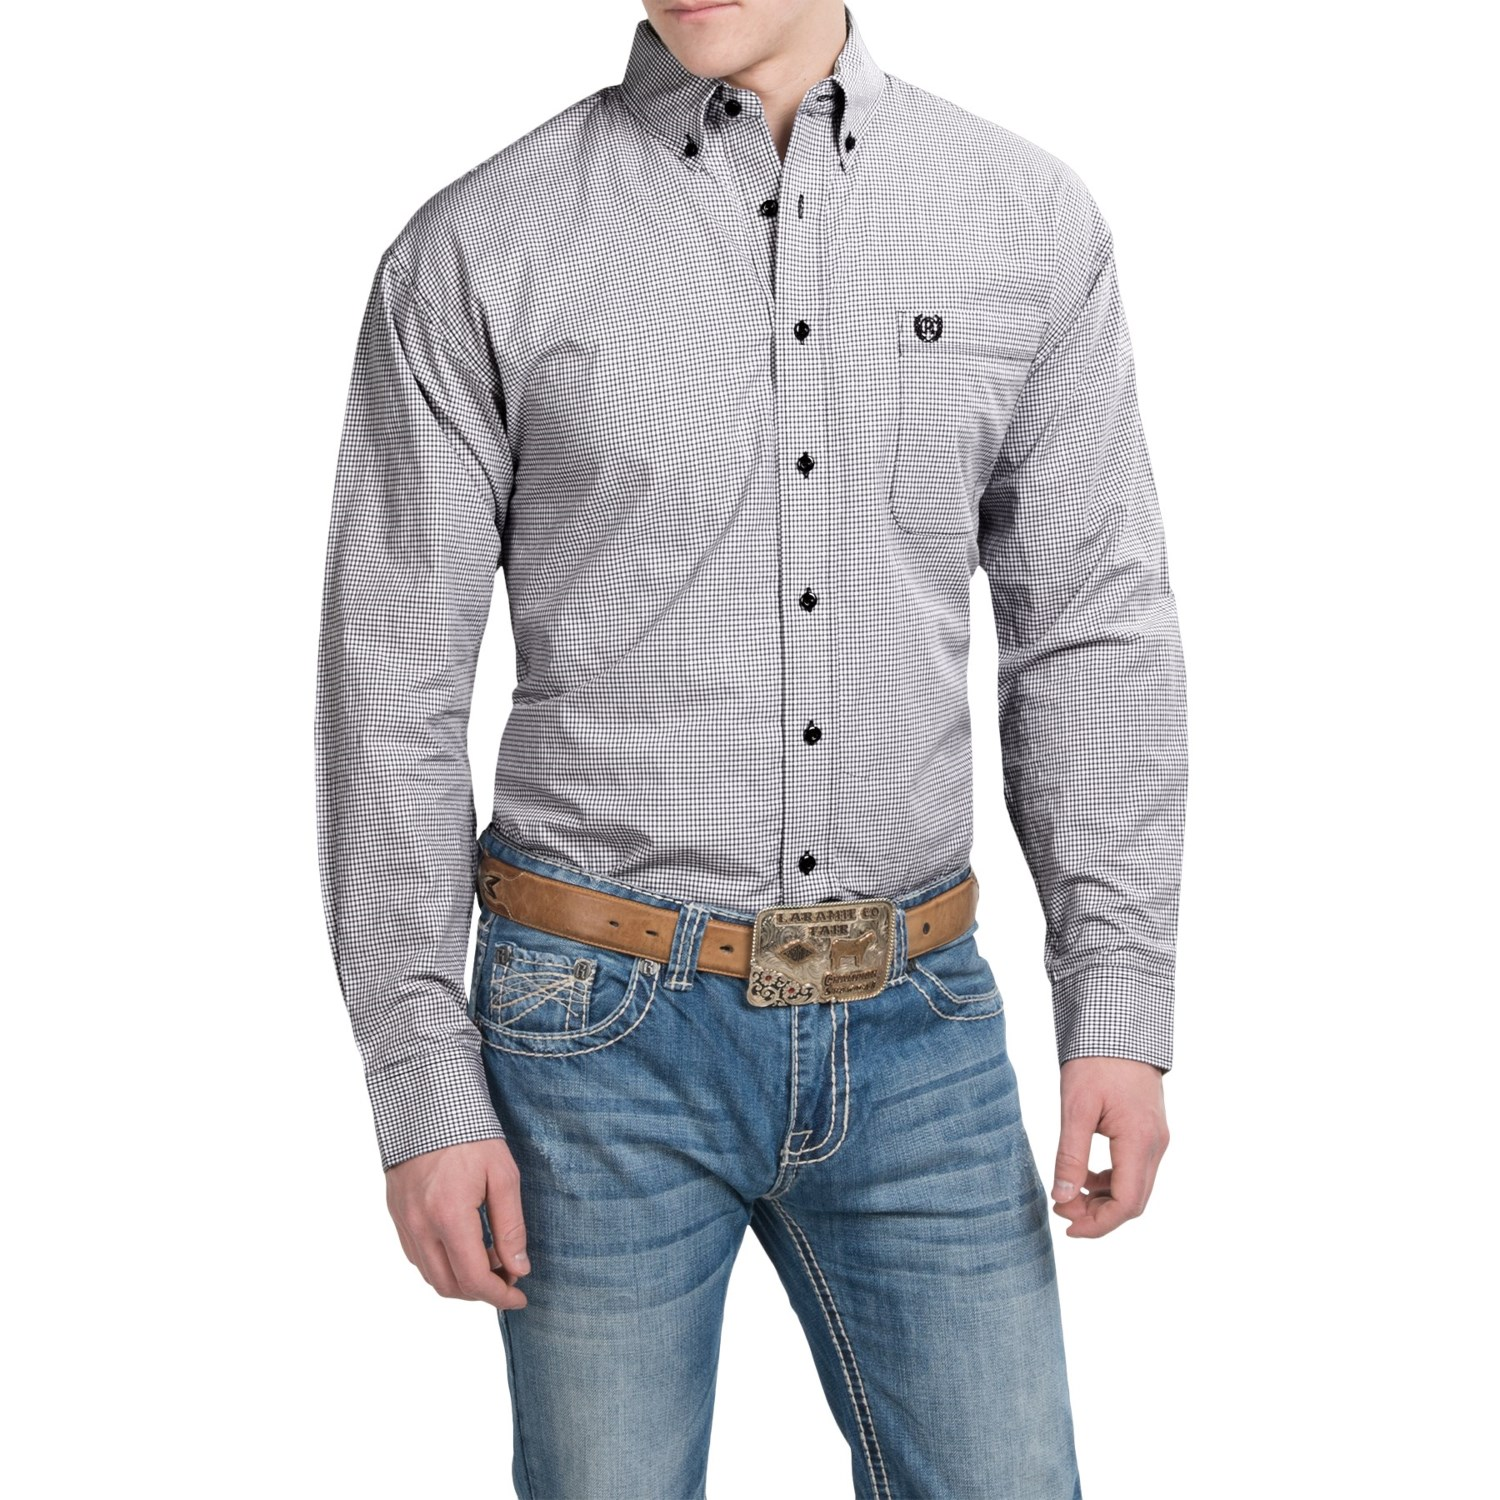 Panhandle slim select dobby check shirt for men and tall for Slim and tall shirts